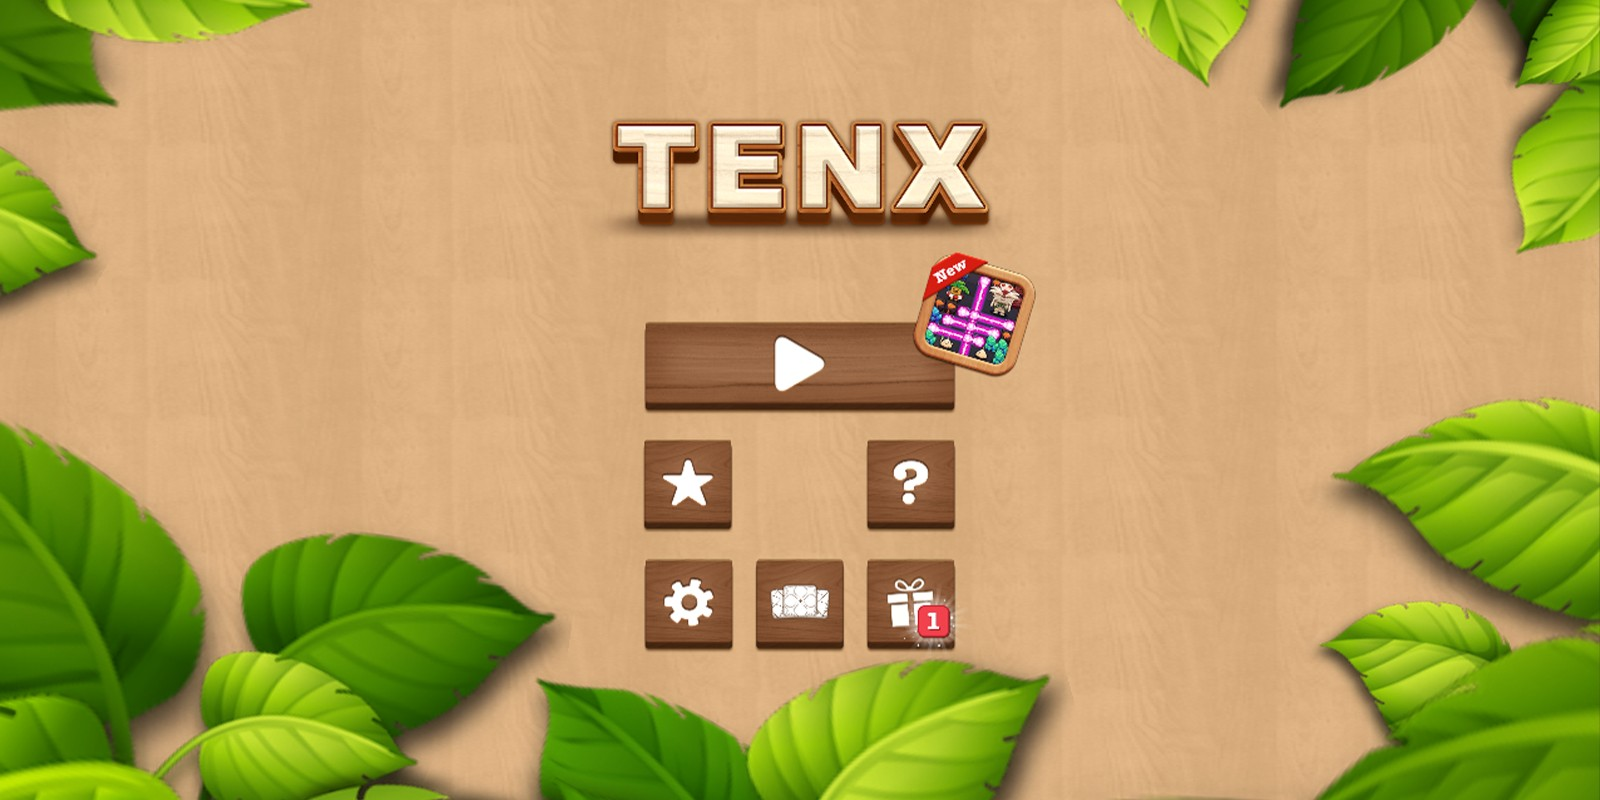 Tenx Puzzle Game - Complete Unitty Project